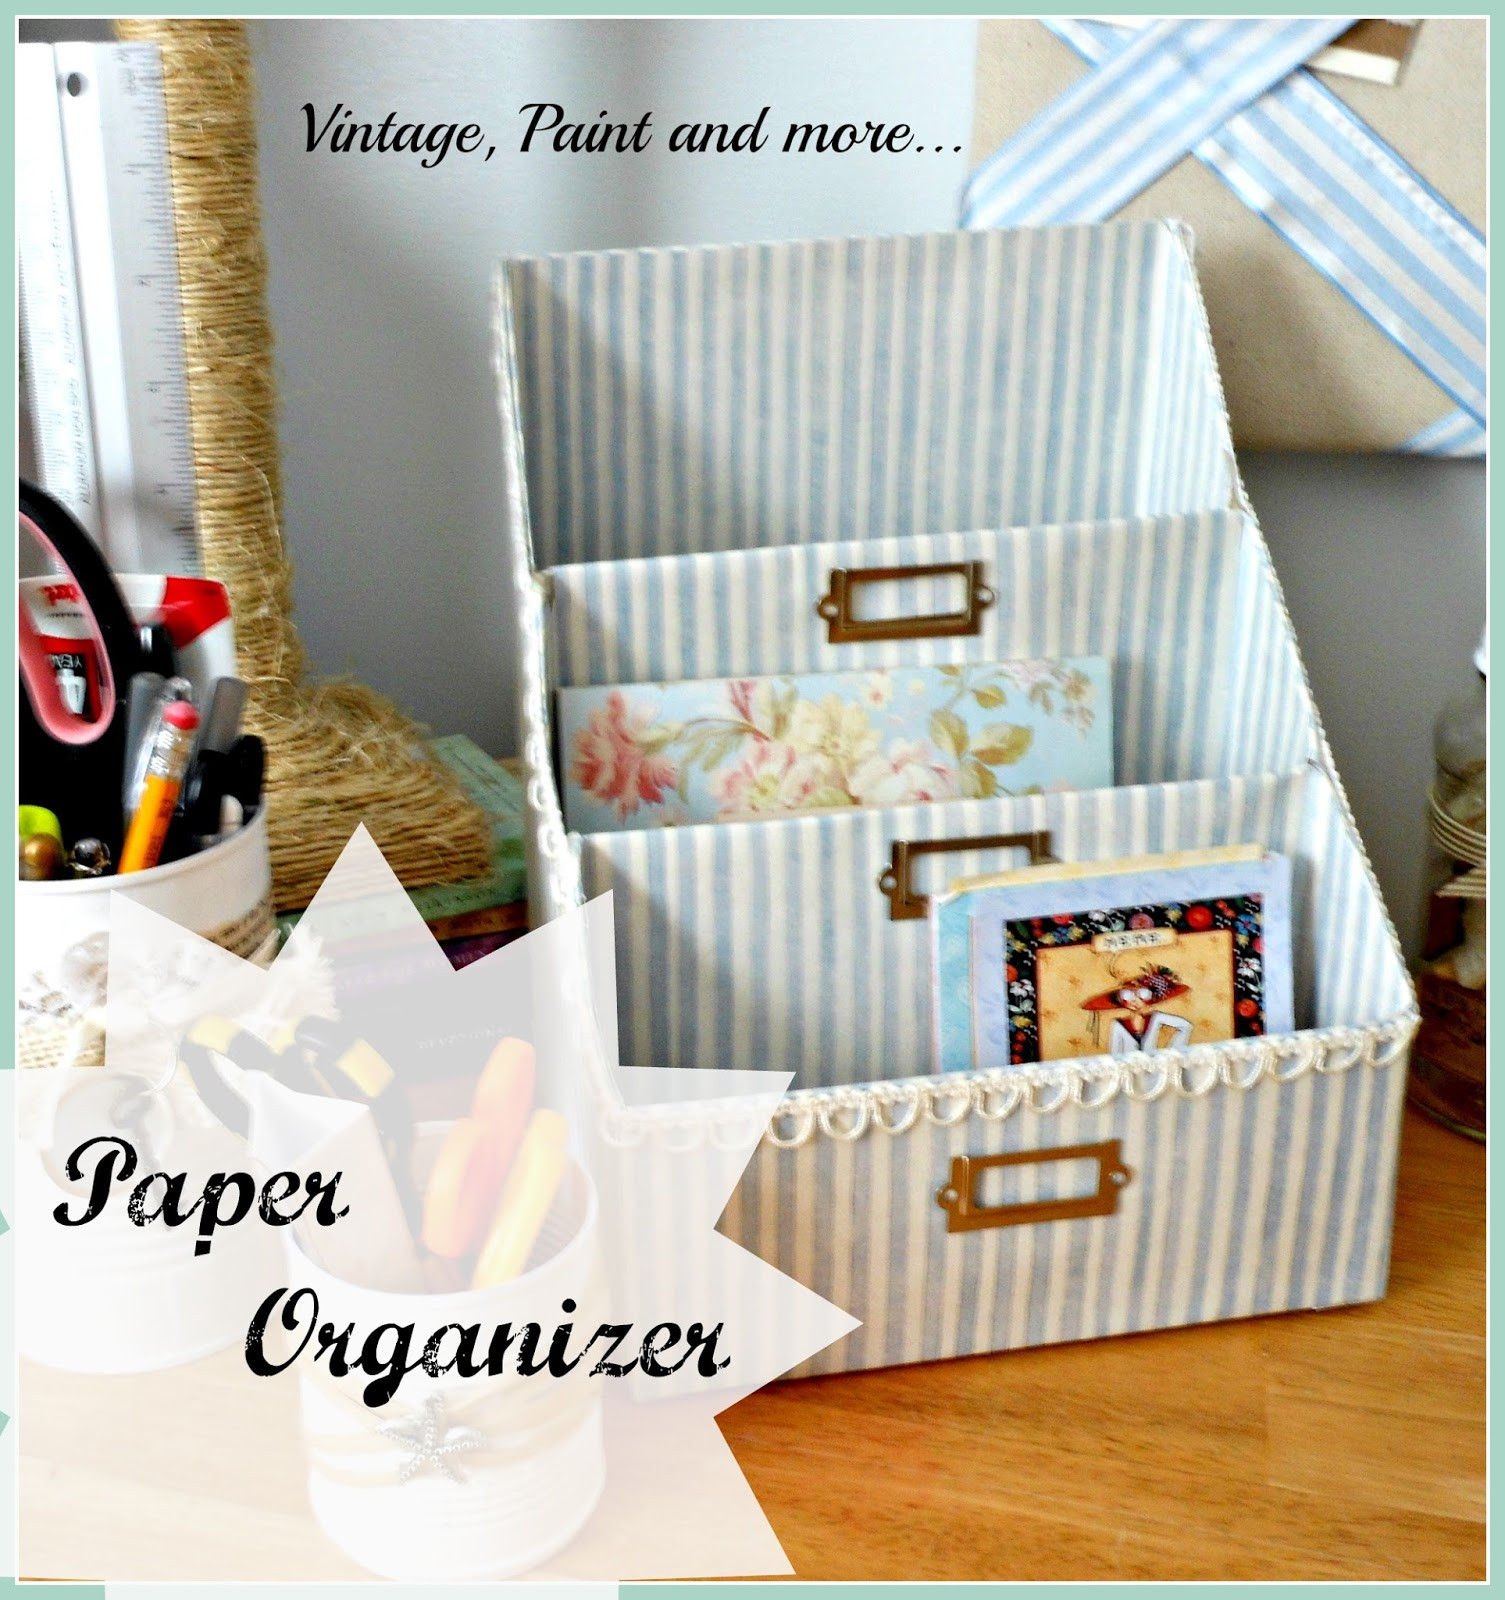 Best ideas about Paper Organizer DIY . Save or Pin Day 7 Organizing Paperwork 31 Cheap & Easy DIY Now.